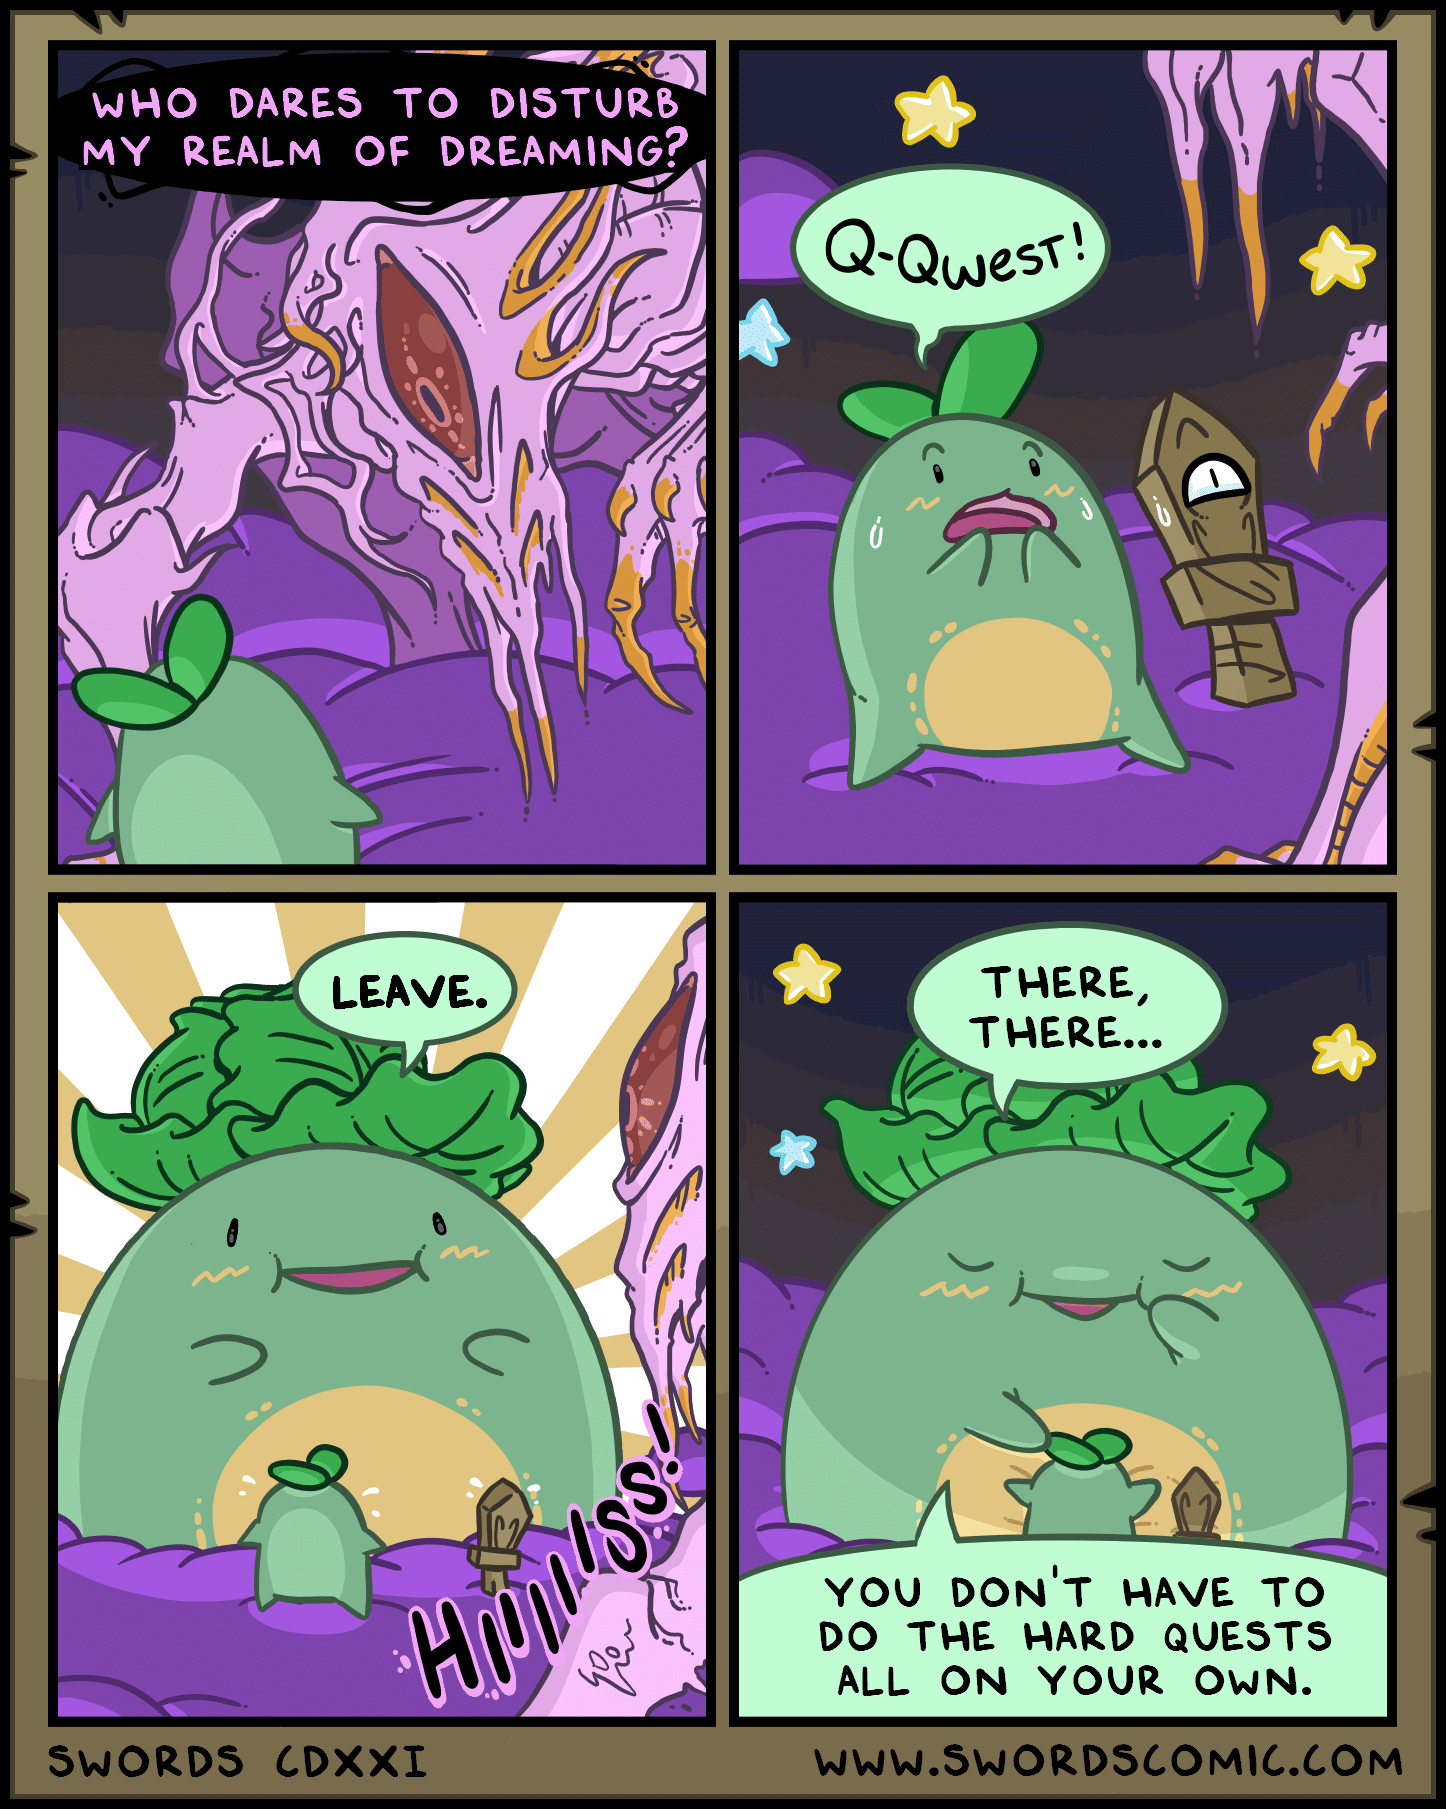 Swords ~ questing with mom (from qwest sprout!), Qwest Sprout, Mom, DP Comics Swords ~ questing with mom (from qwest sprout!), Qwest Sprout, Mom, DP text: WHO DARES -ro DISTURB MY REALM OF DREAMING? SWORDS LEAVE. CDXXI QQwee5 • THERE, THERE... YOU DON'T HAVE TO DO THE HARD QUESTS ALL ON YOUR OWN. WWW.SWORDSCOMIC.COM